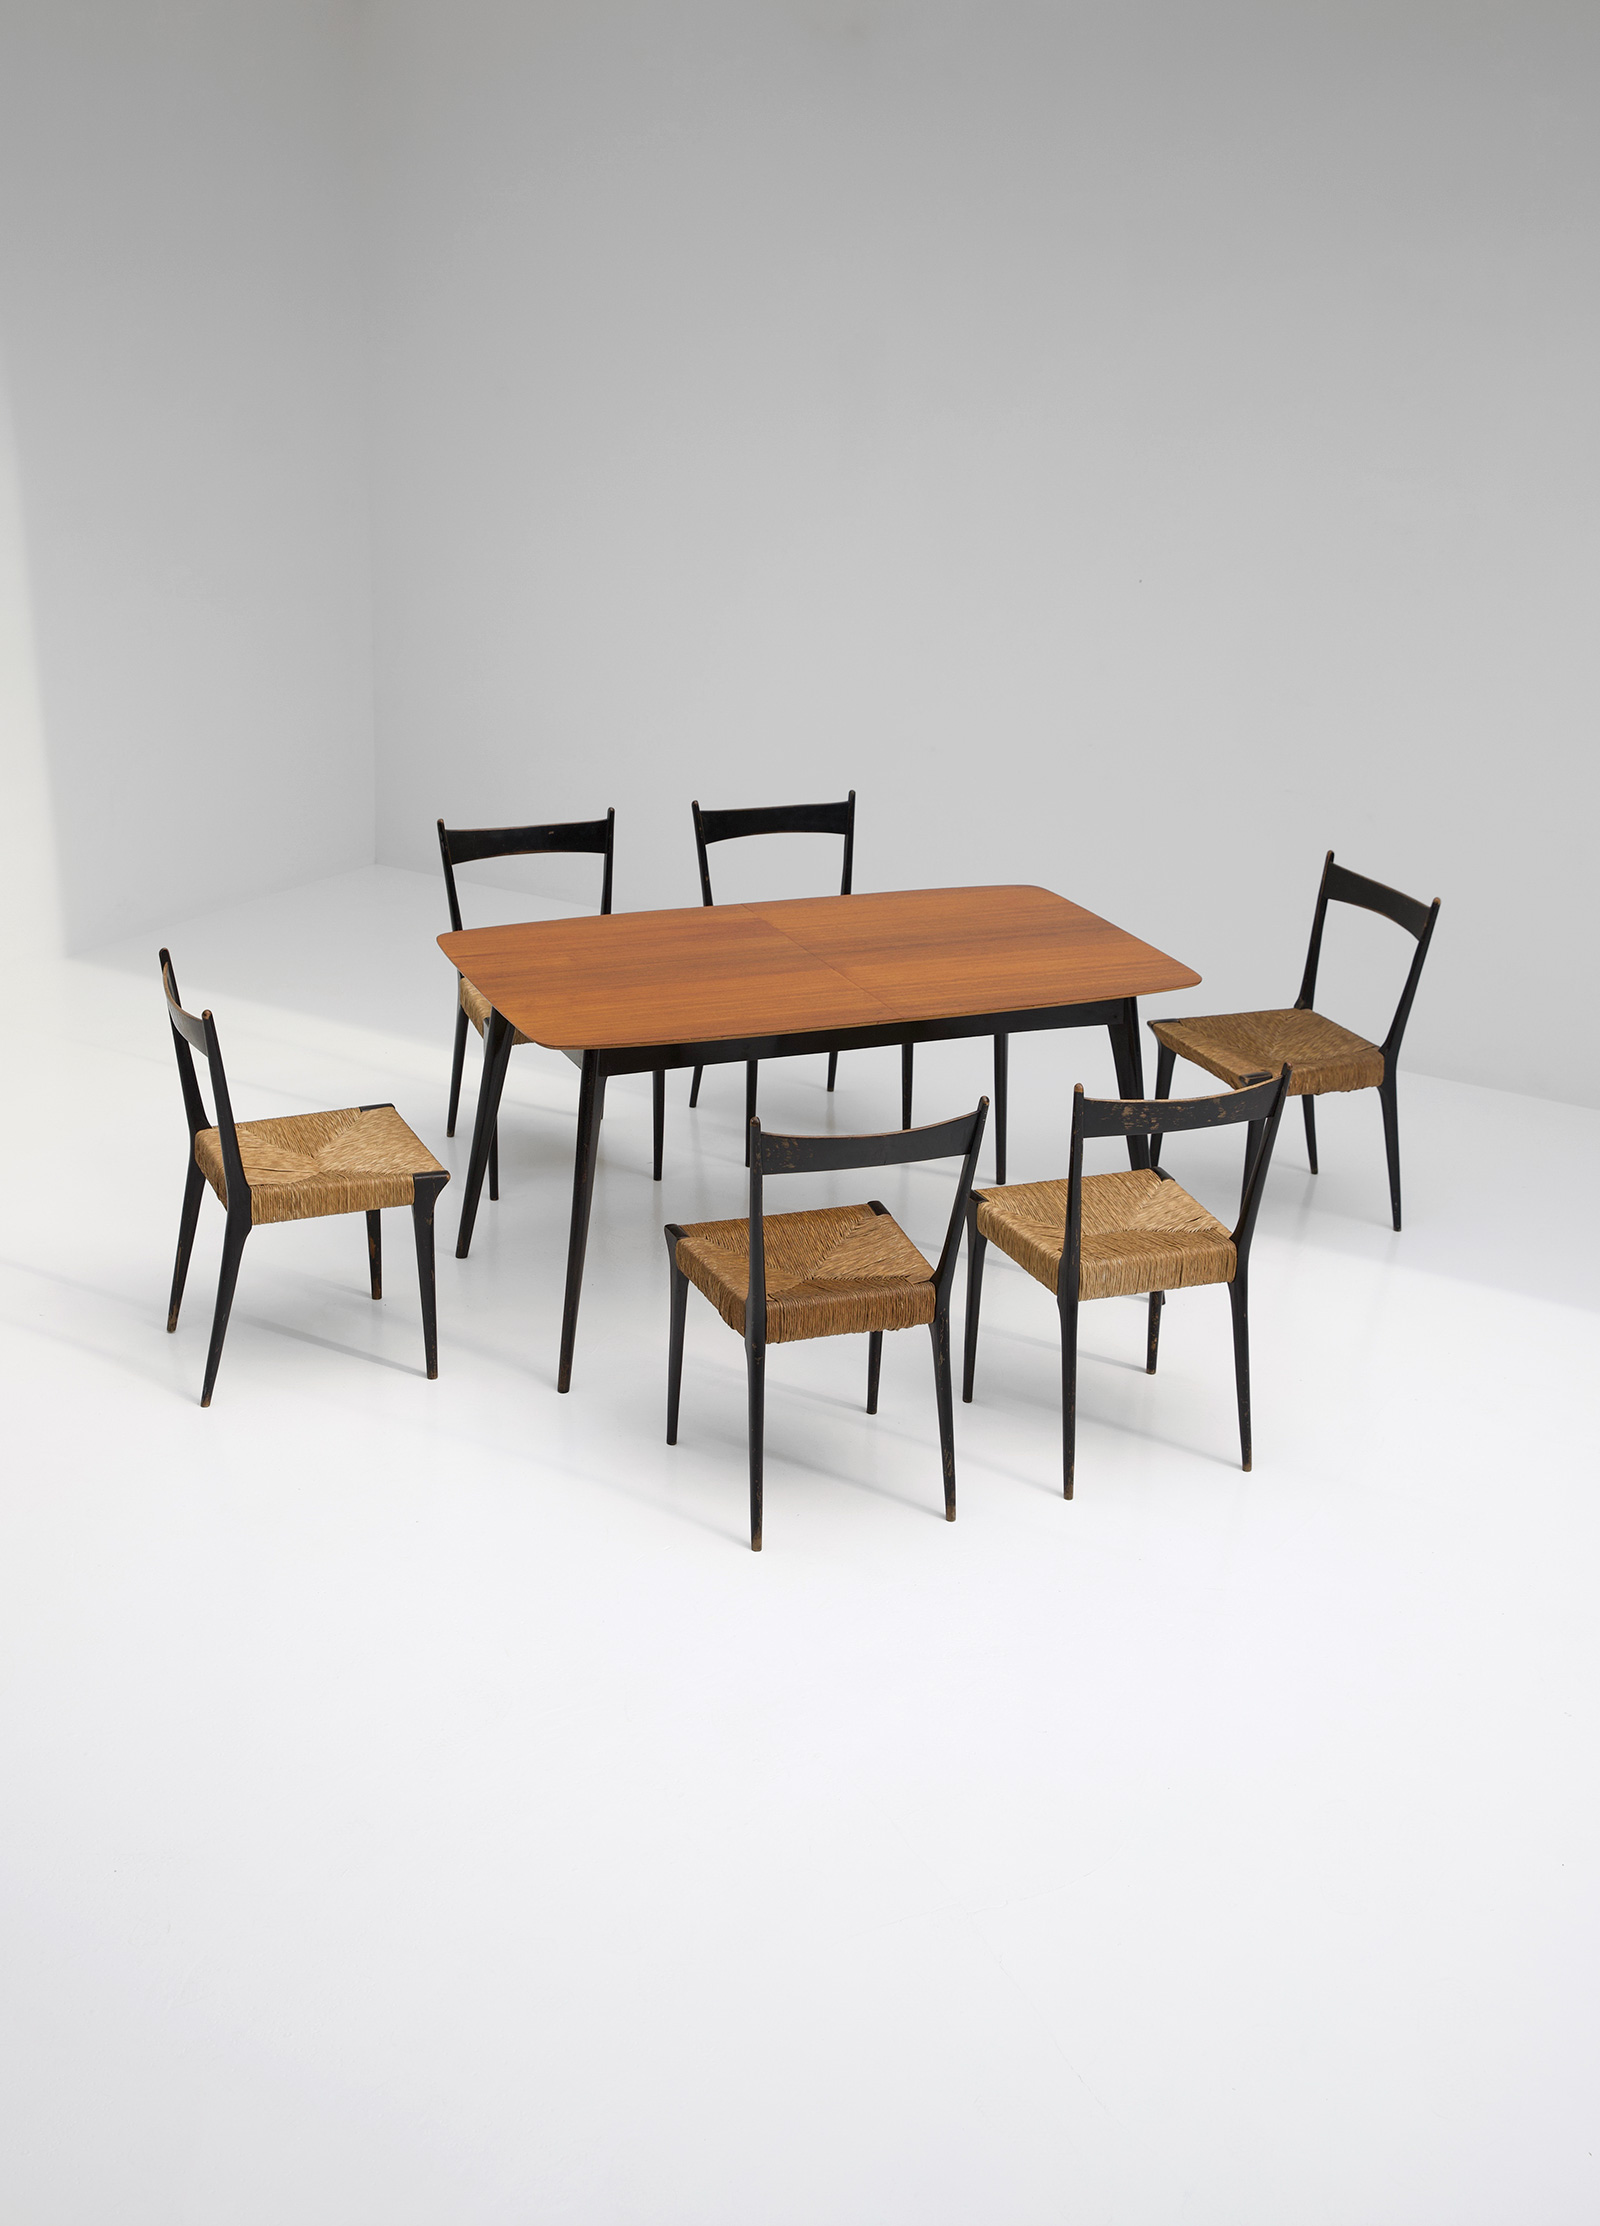 Alfred Hendrickx Dining Table M2 for Belformimage 7